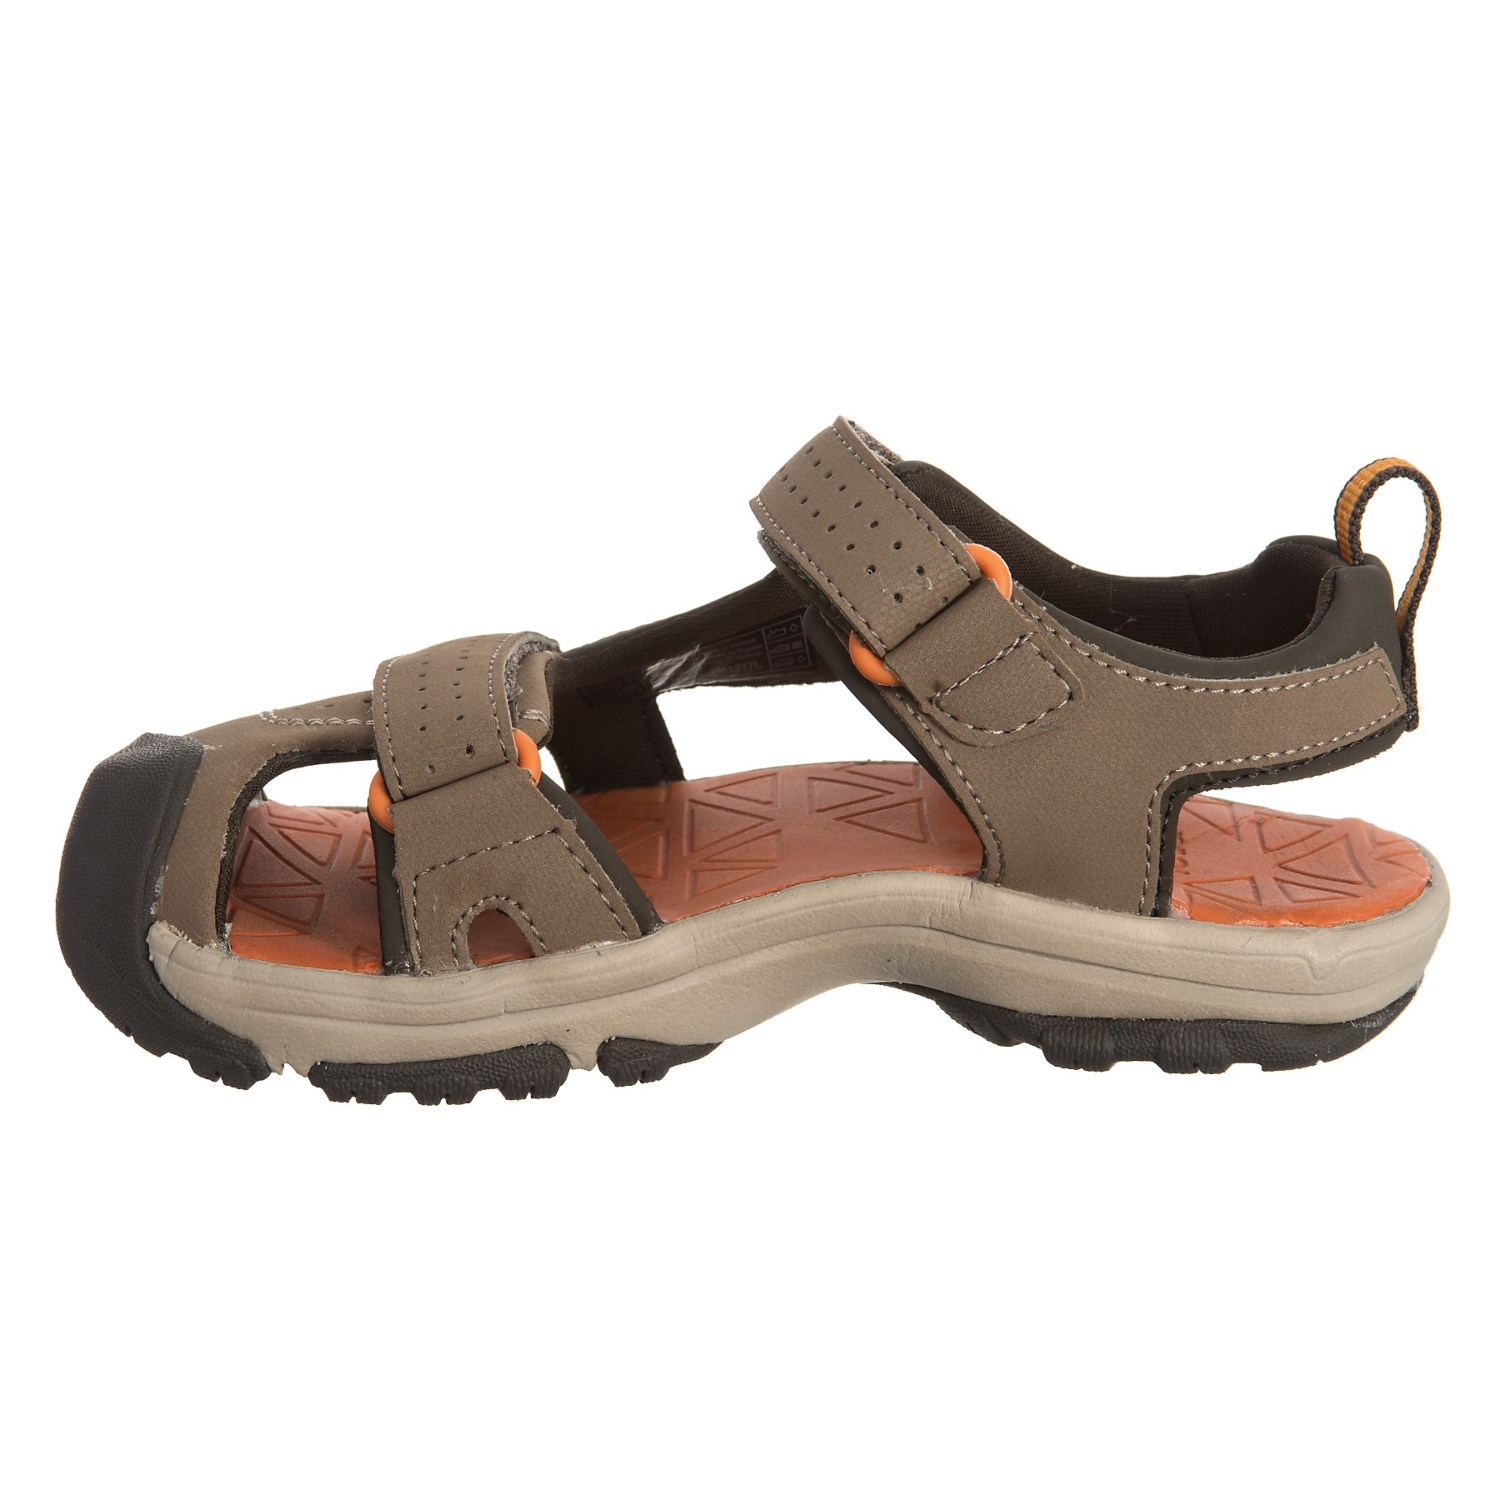 82829db36a77 Teva Hurricane Toe Pro Sport Sandals (For Boys) - Save 20%